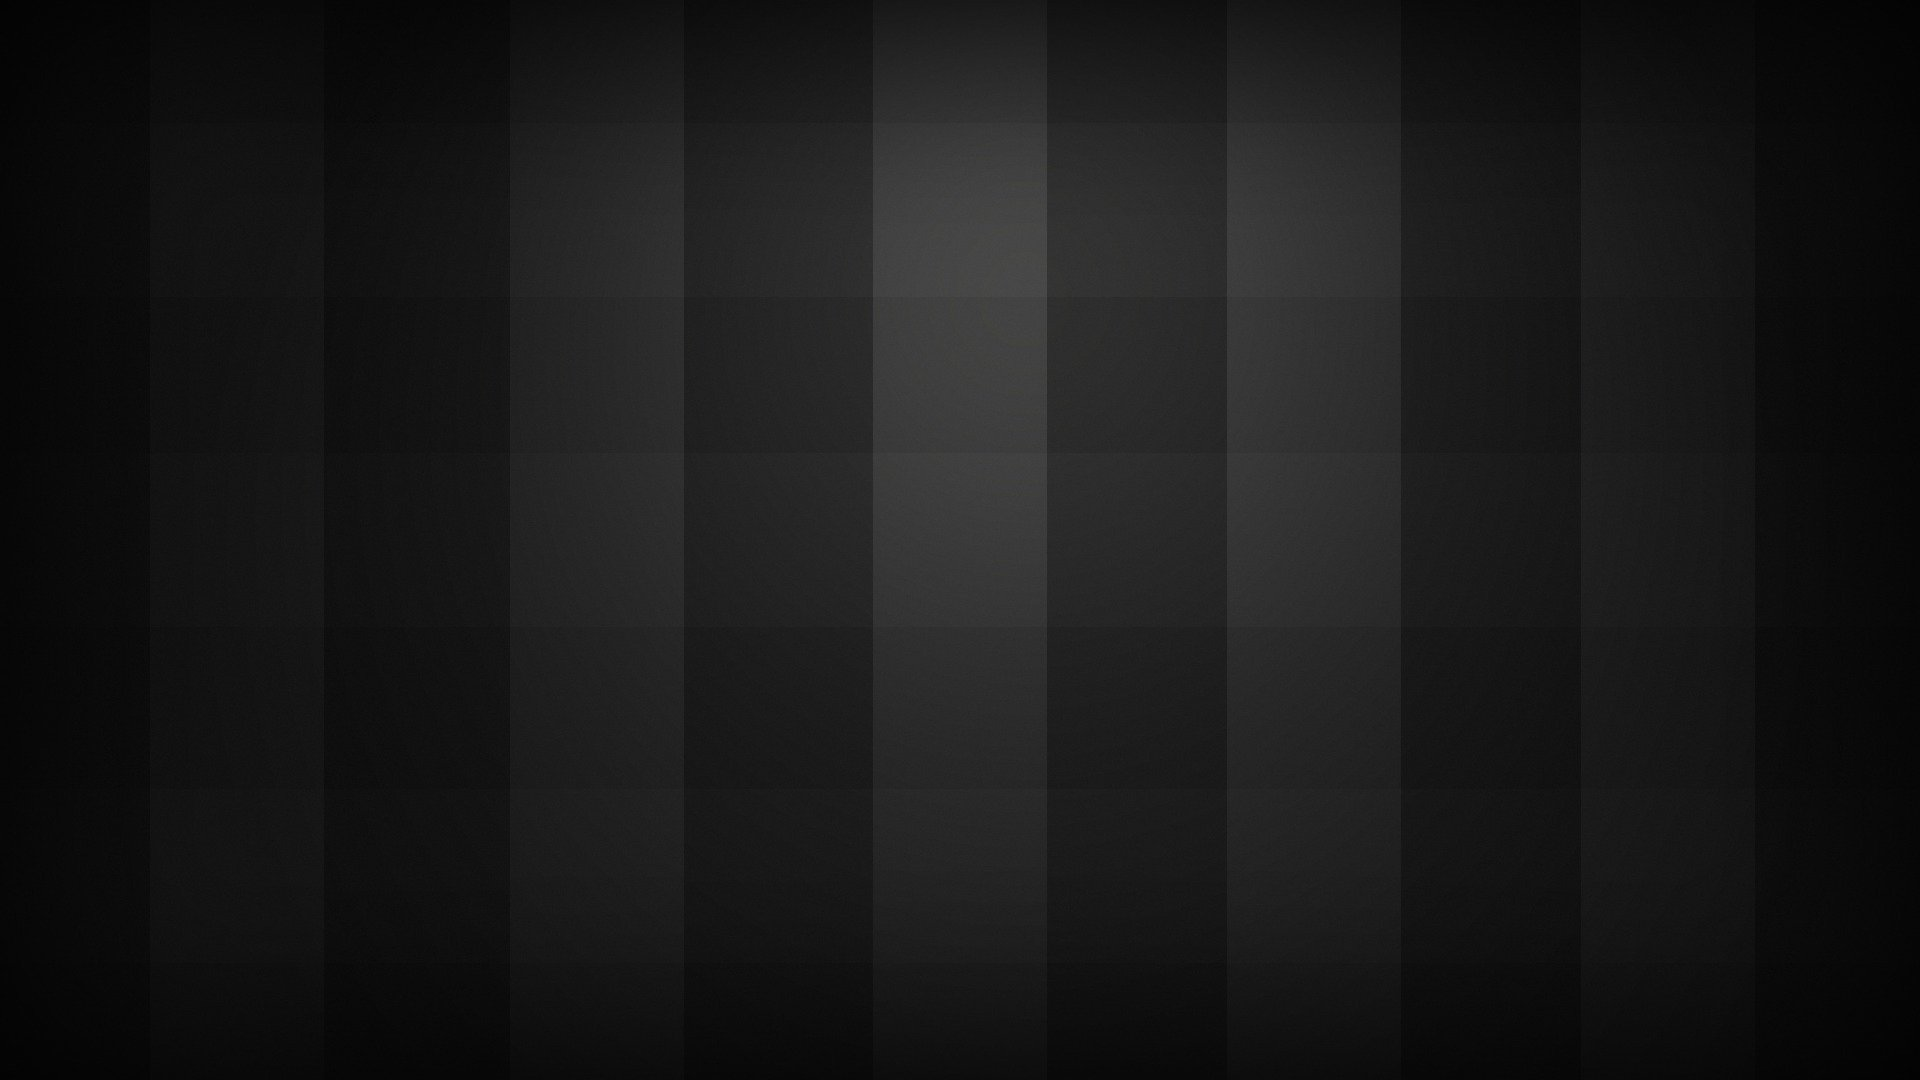 checked Black background